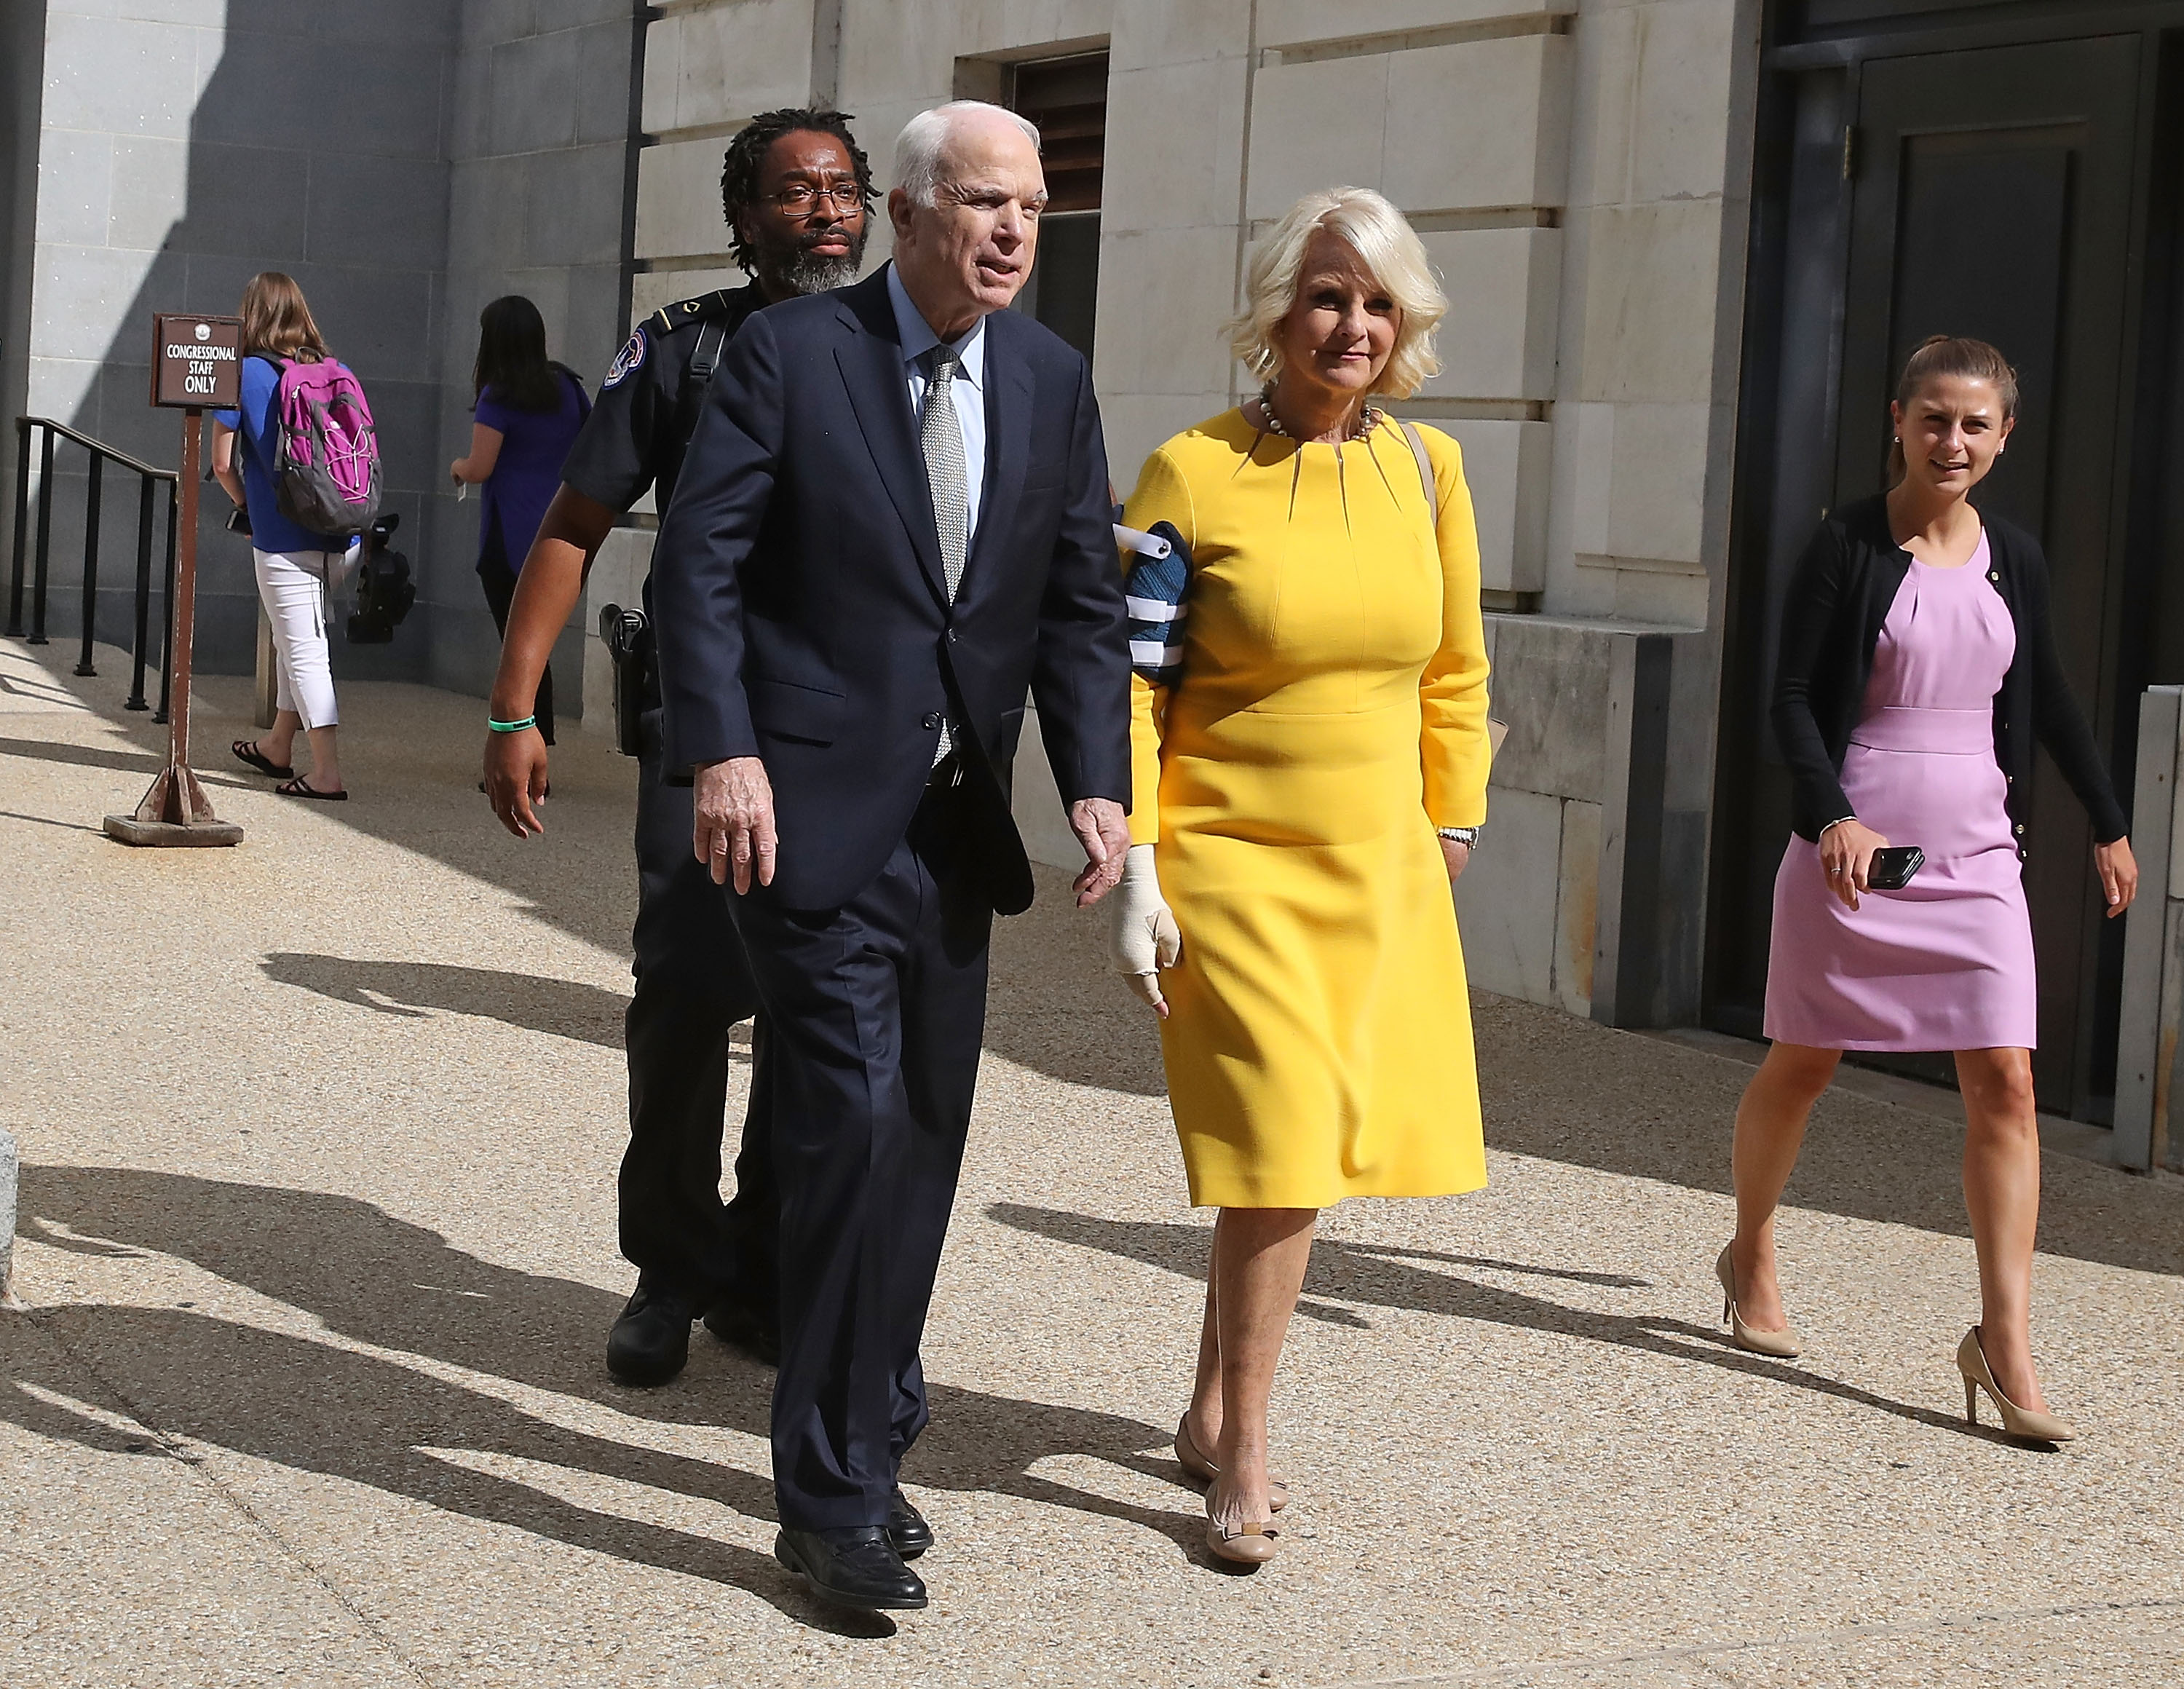 Sen. John McCain (R-AZ) Back On Capitol Hill For Health Care Vote, After Cancer Diagnosis Last Week